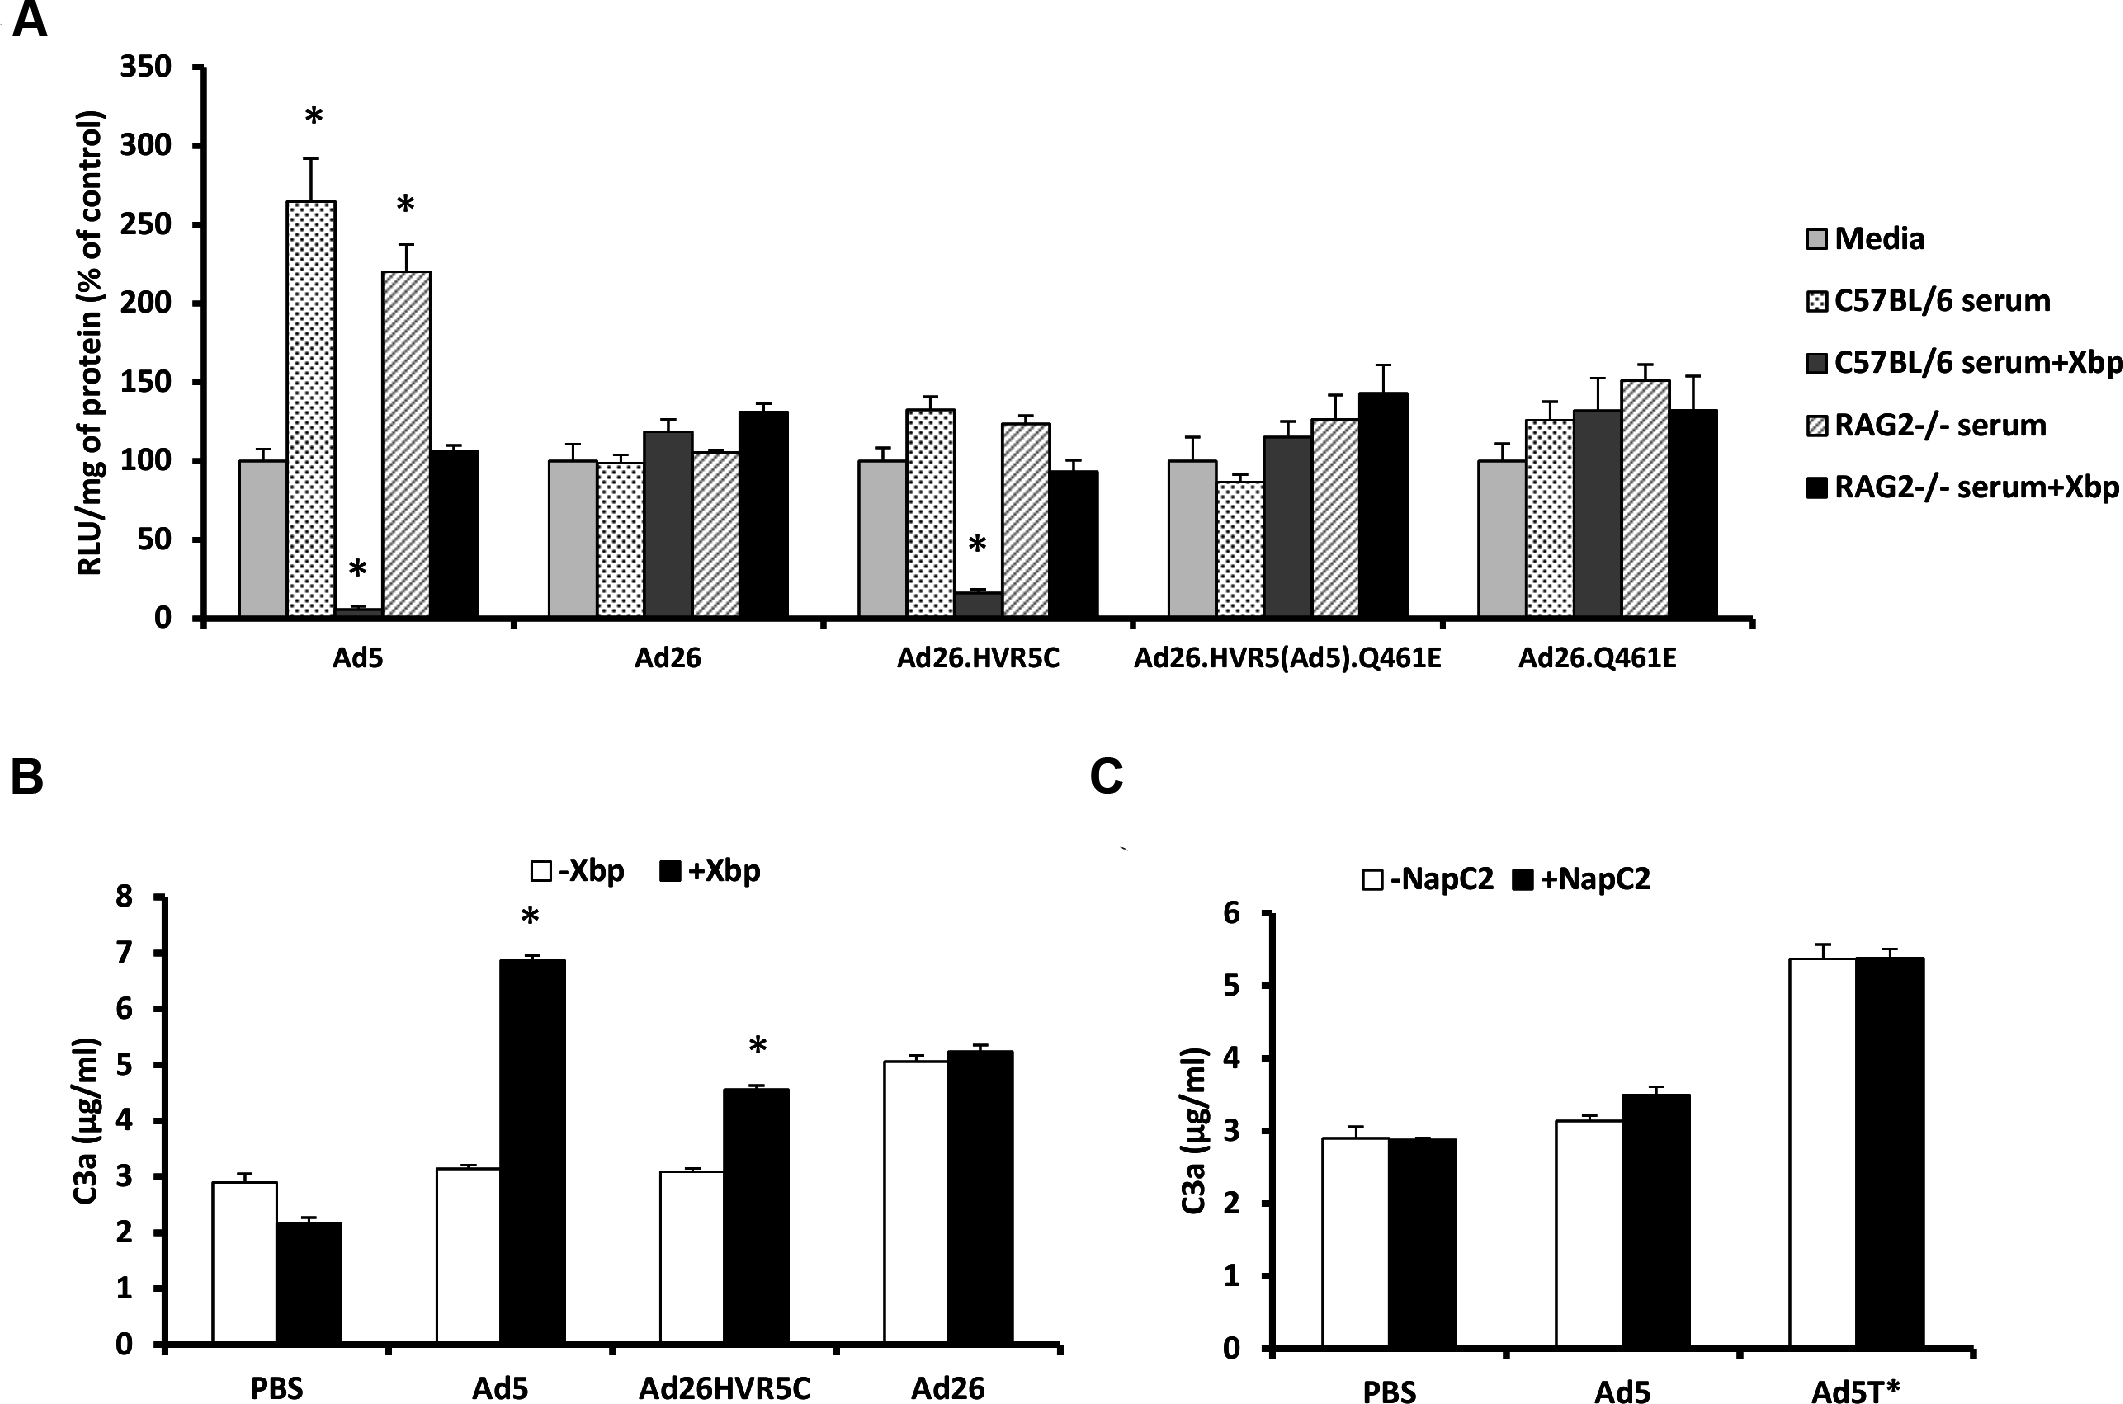 FX protects Ad26.HVR5C against immune attack.